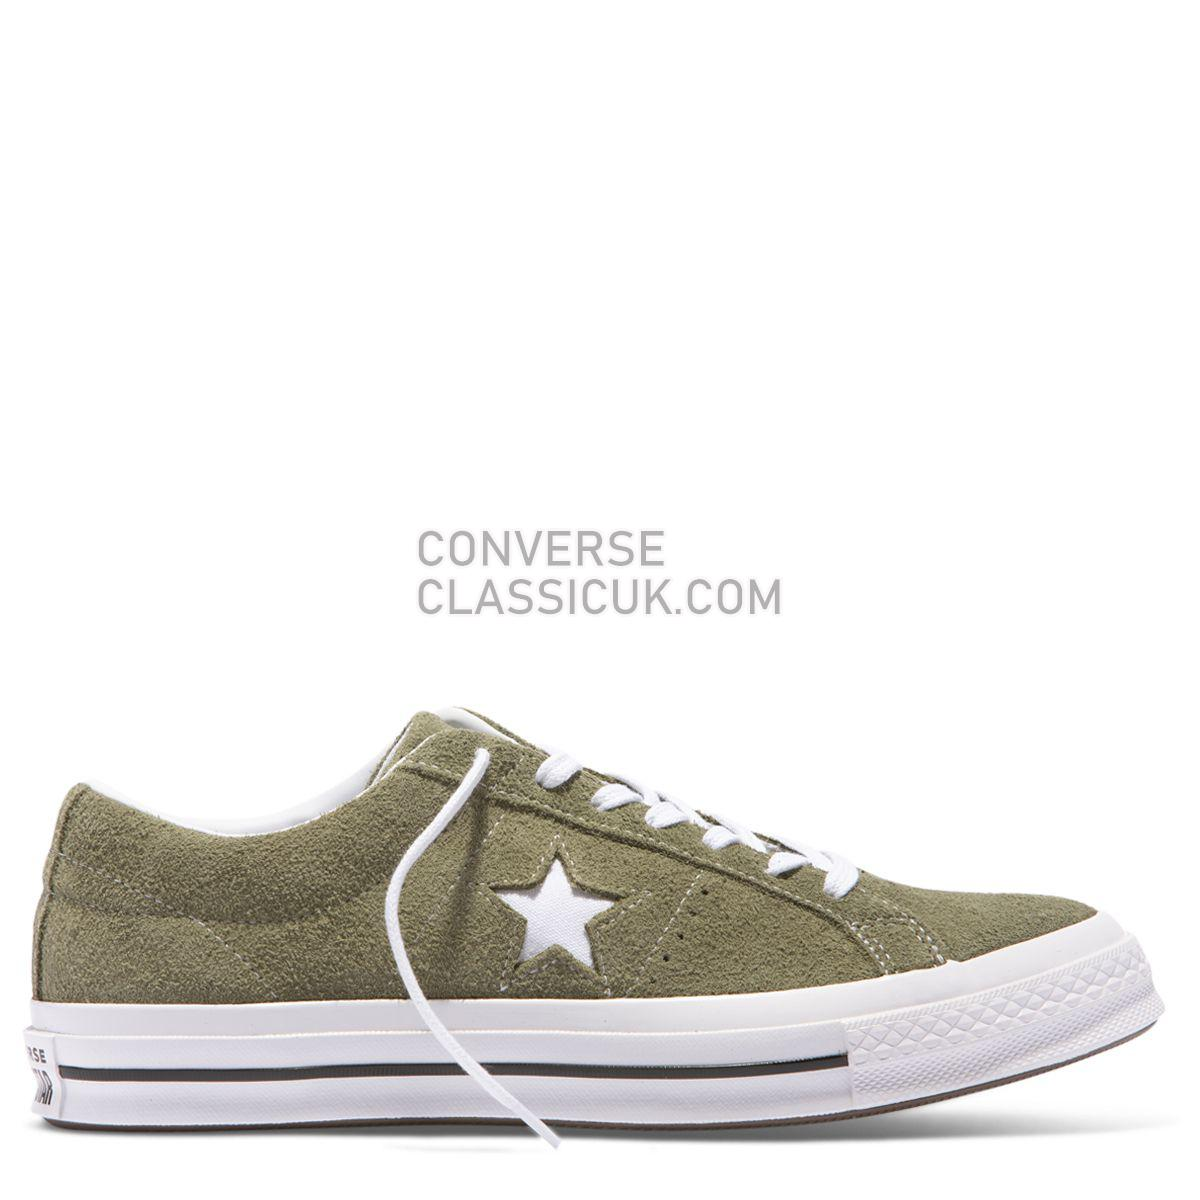 Converse One Star Vintage Suede Low Top Field Surplus Mens Womens Unisex 161576 Field Surplus/White/White Shoes